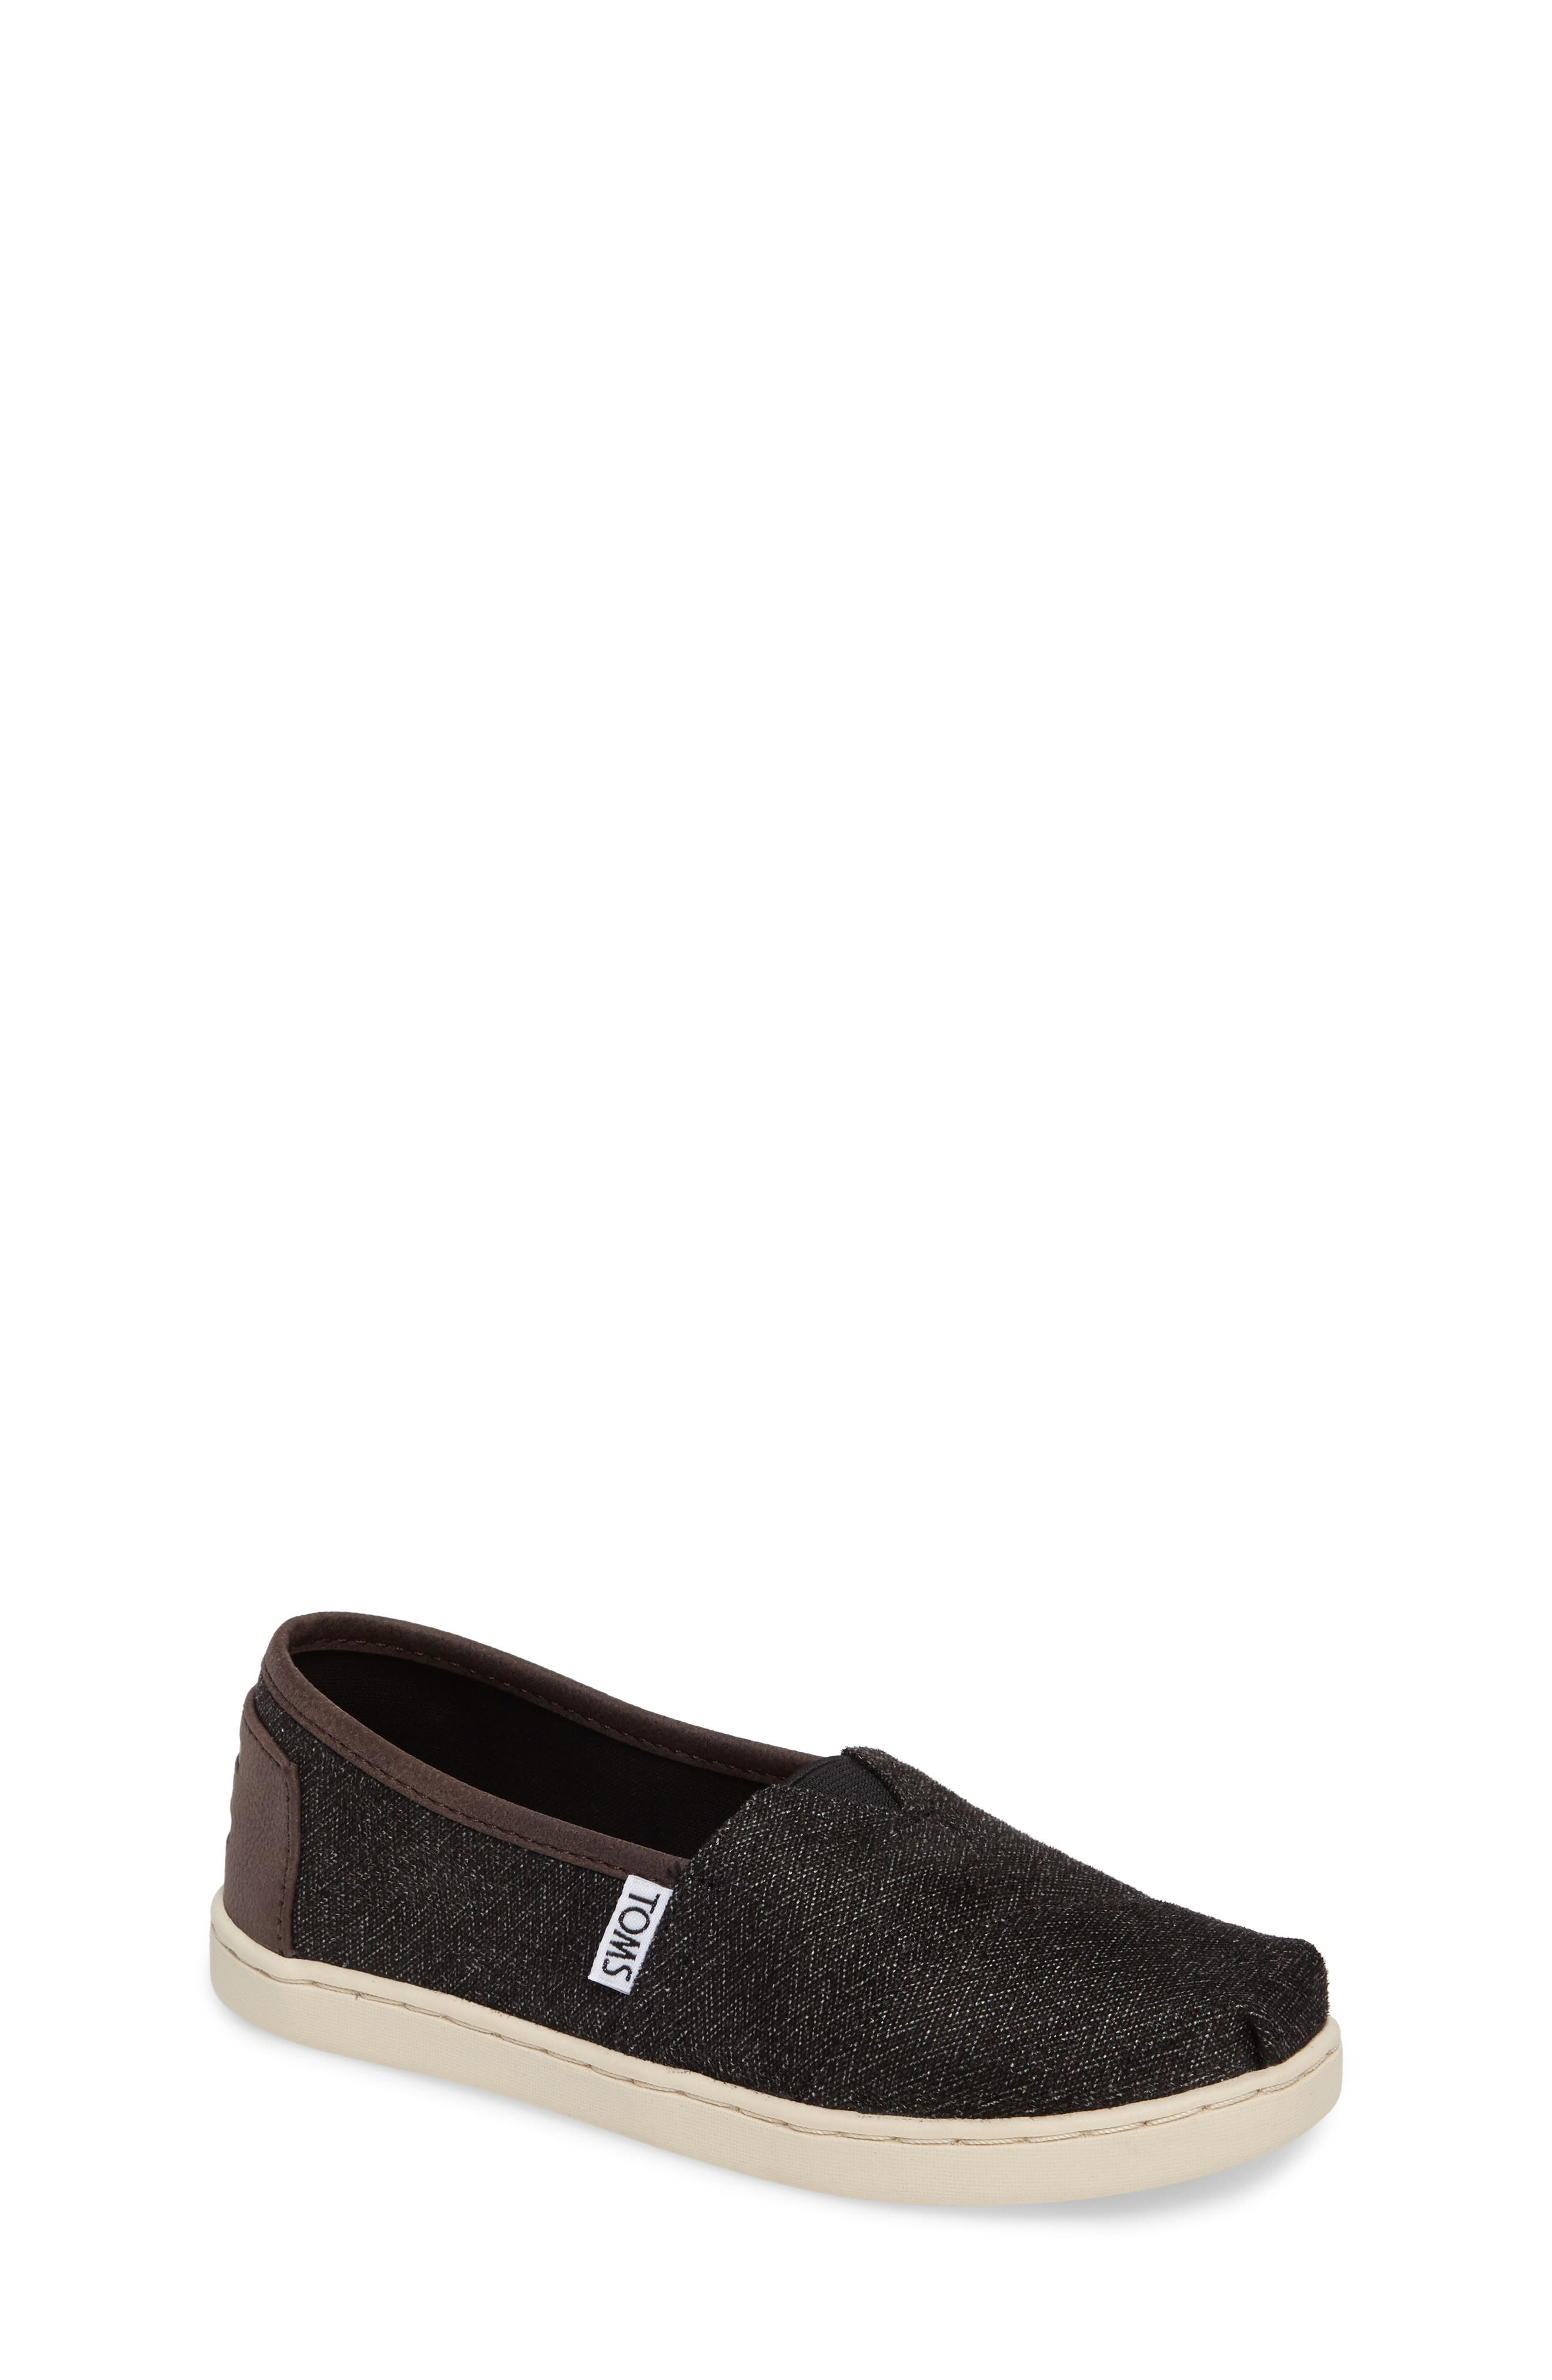 Main Image - TOMS Herringbone Slip-On Sneaker (Toddler, Little Kid & Big Kid)